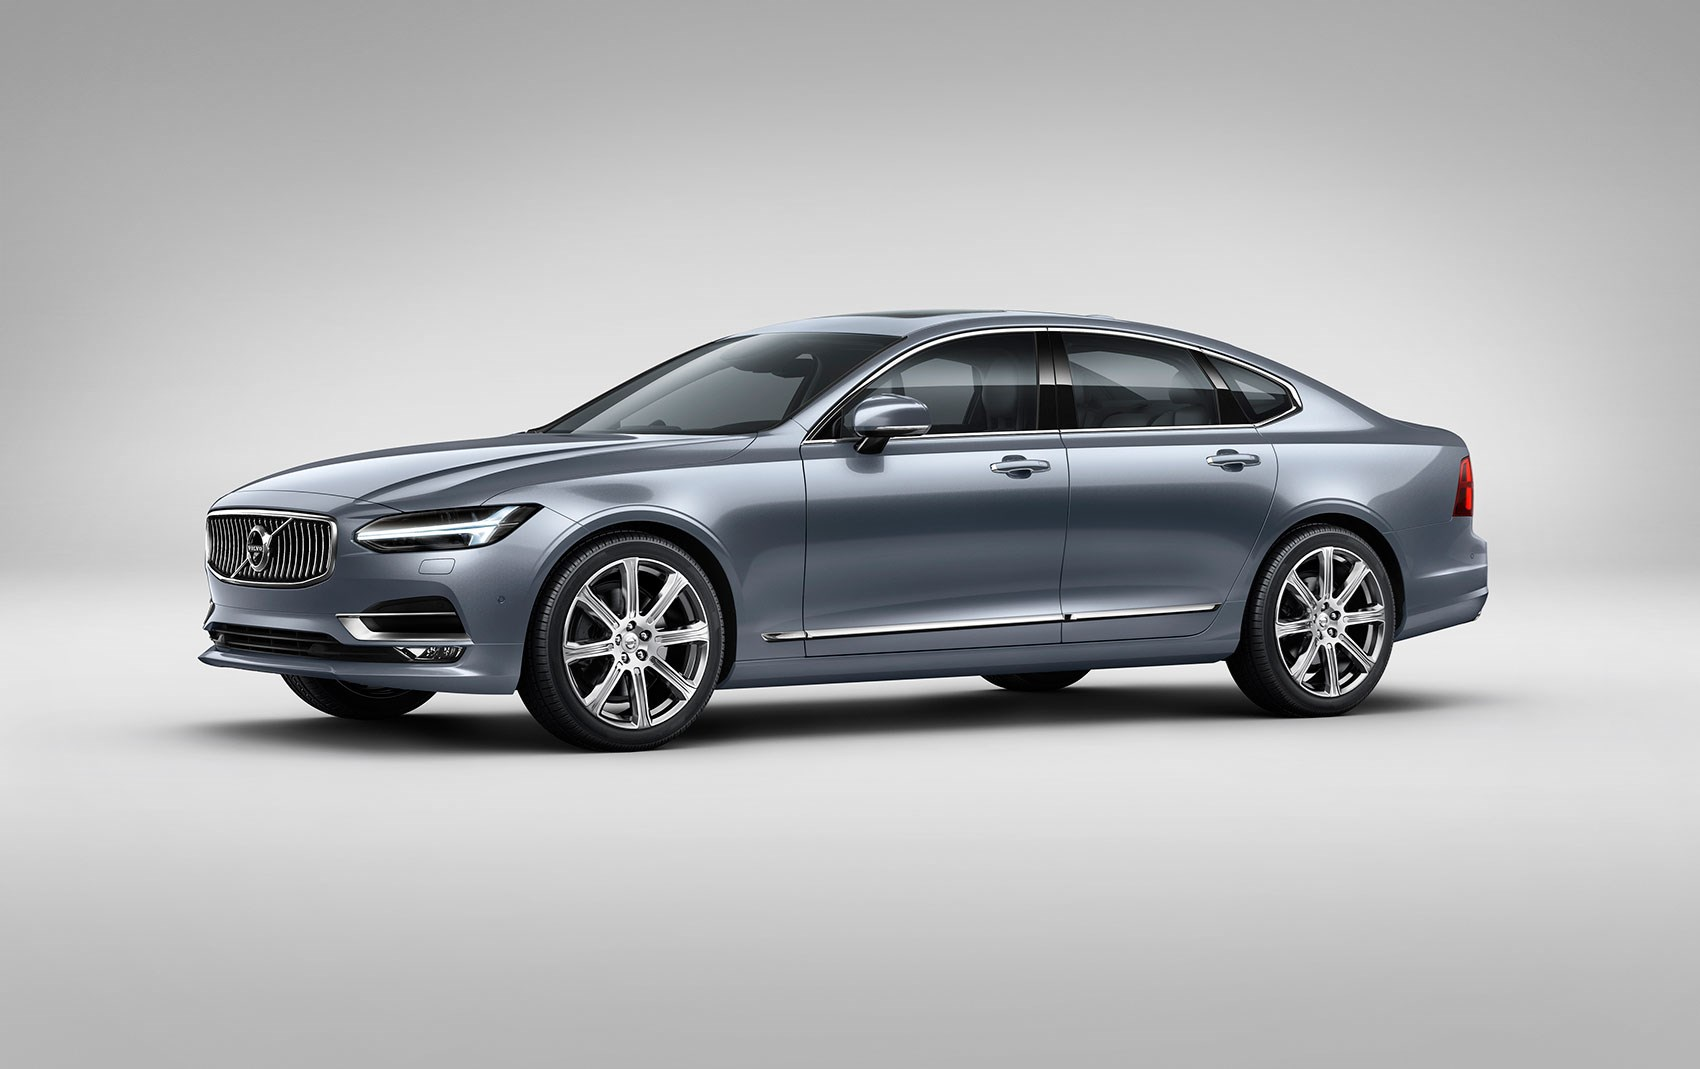 The New Volvo S90 Still Want That Audi A6